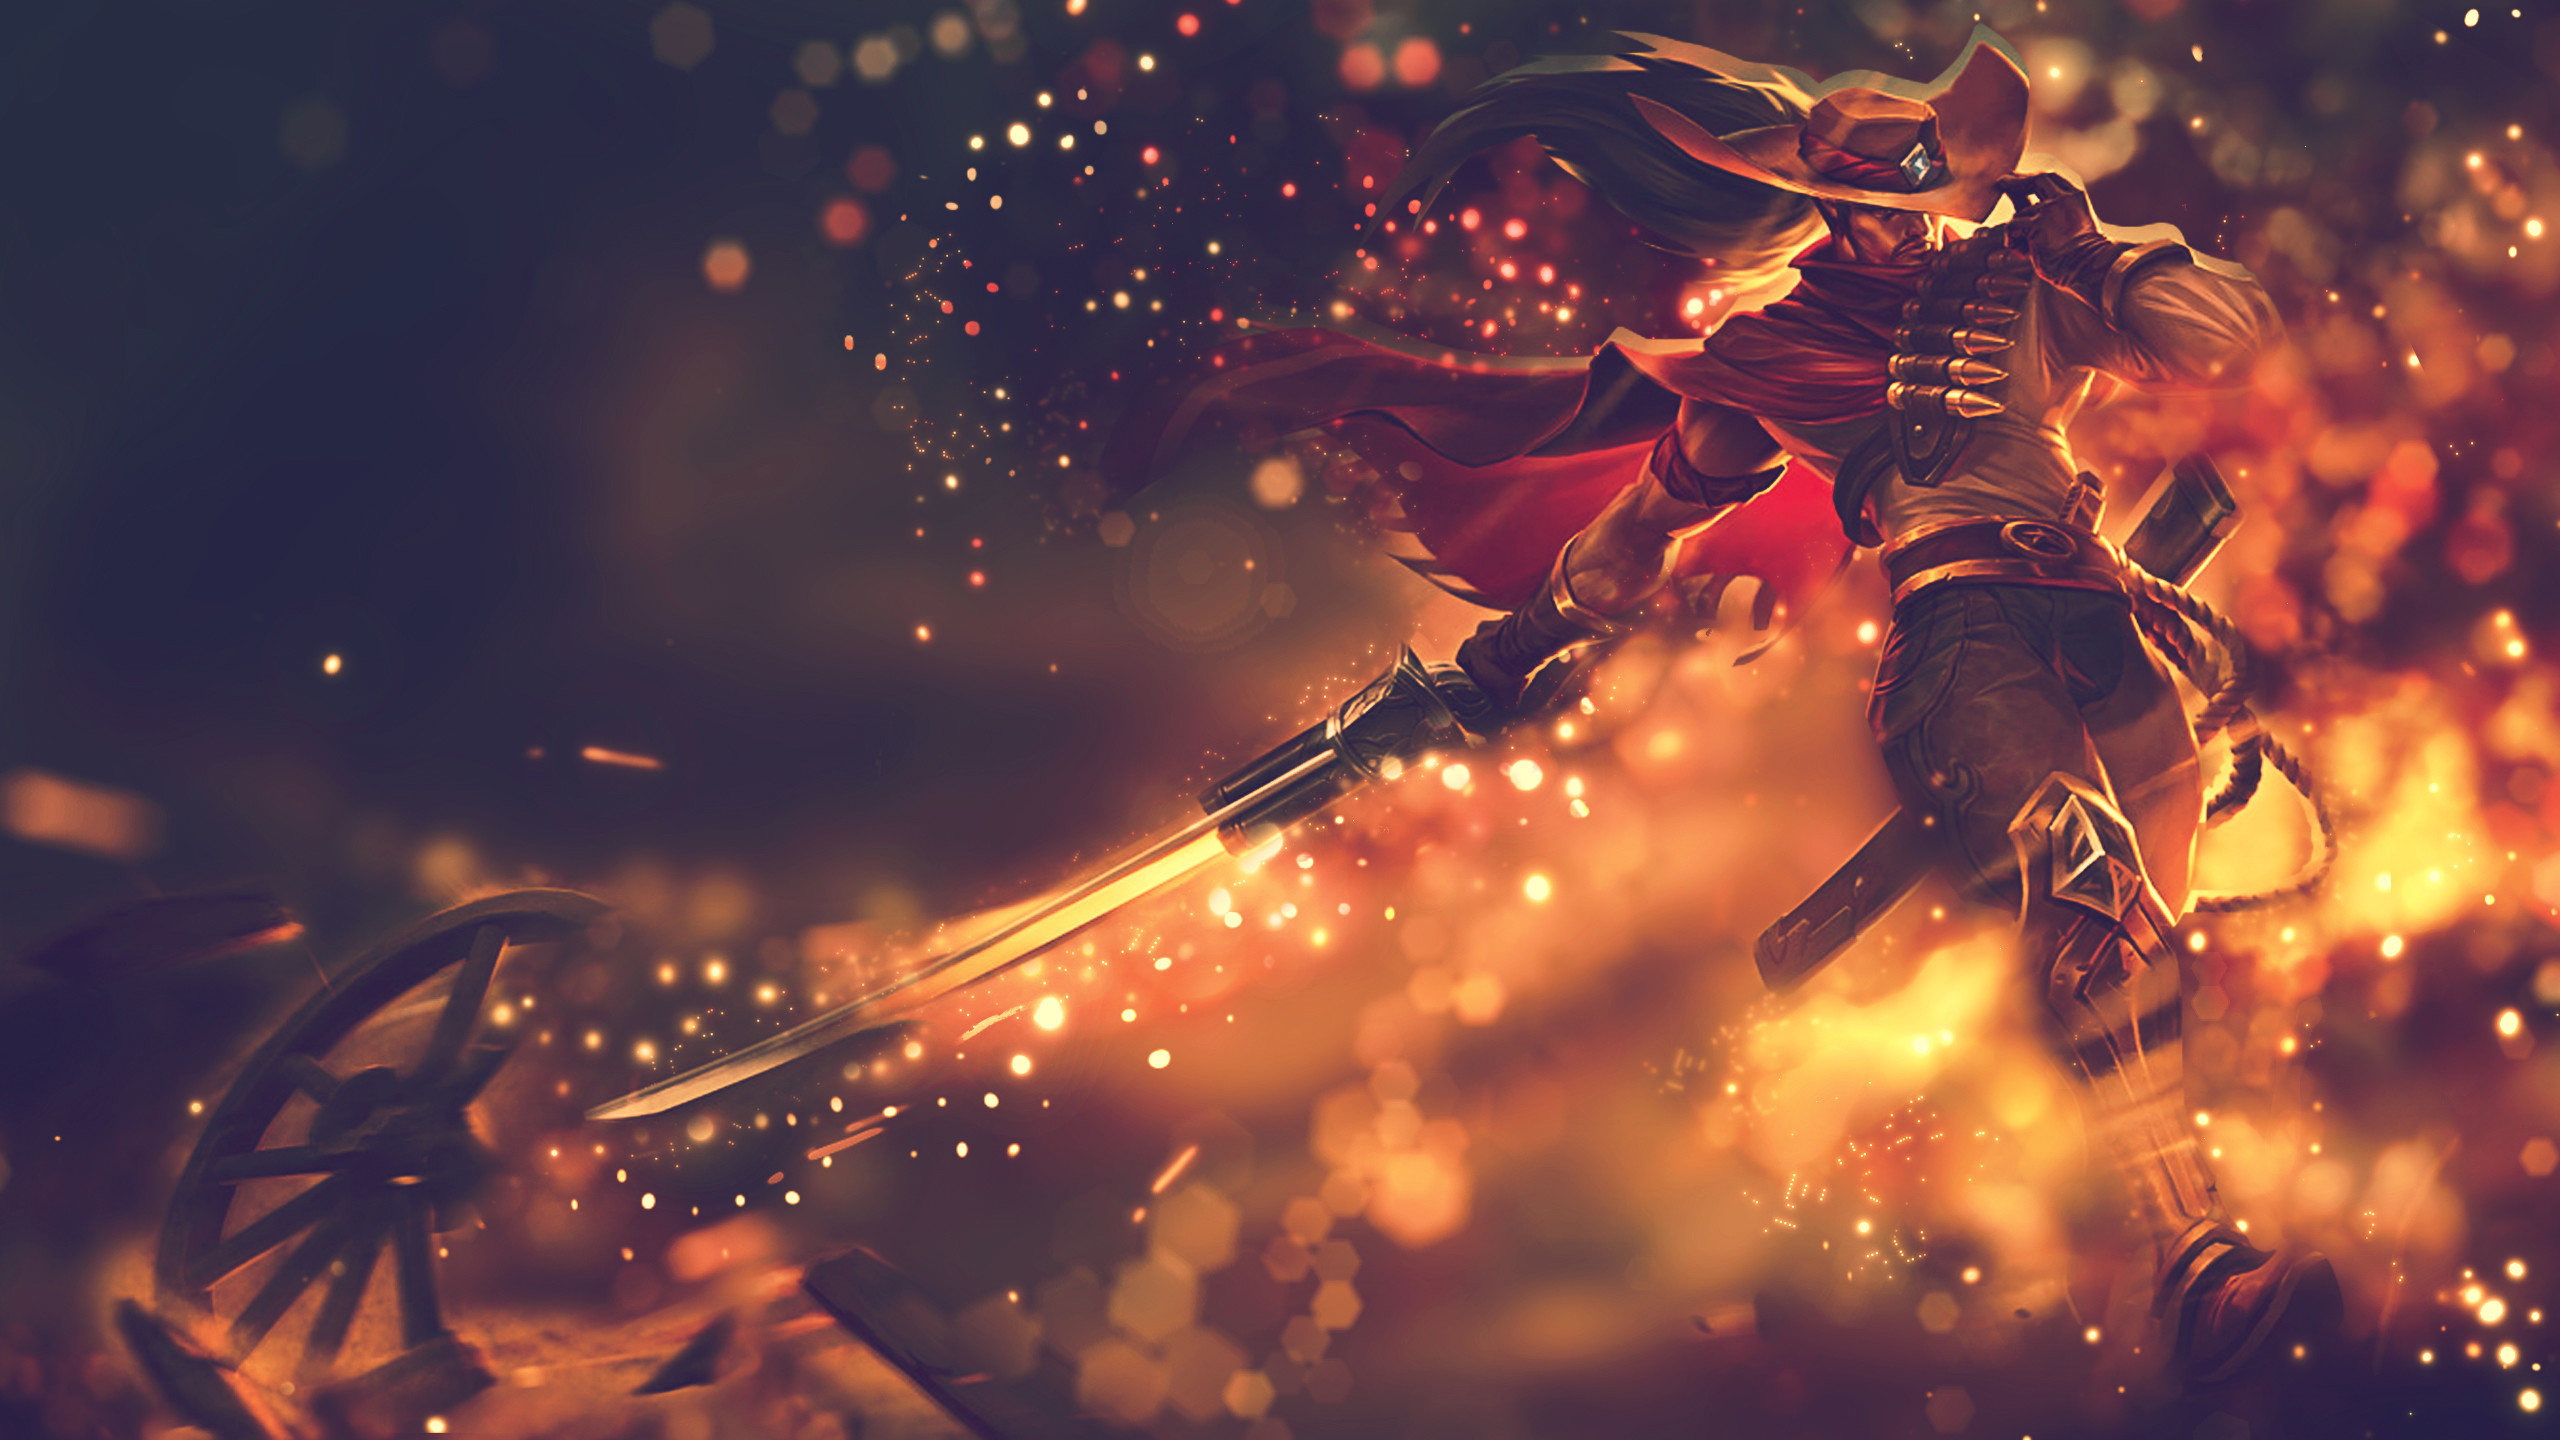 76 Project Yasuo Wallpaper Hd